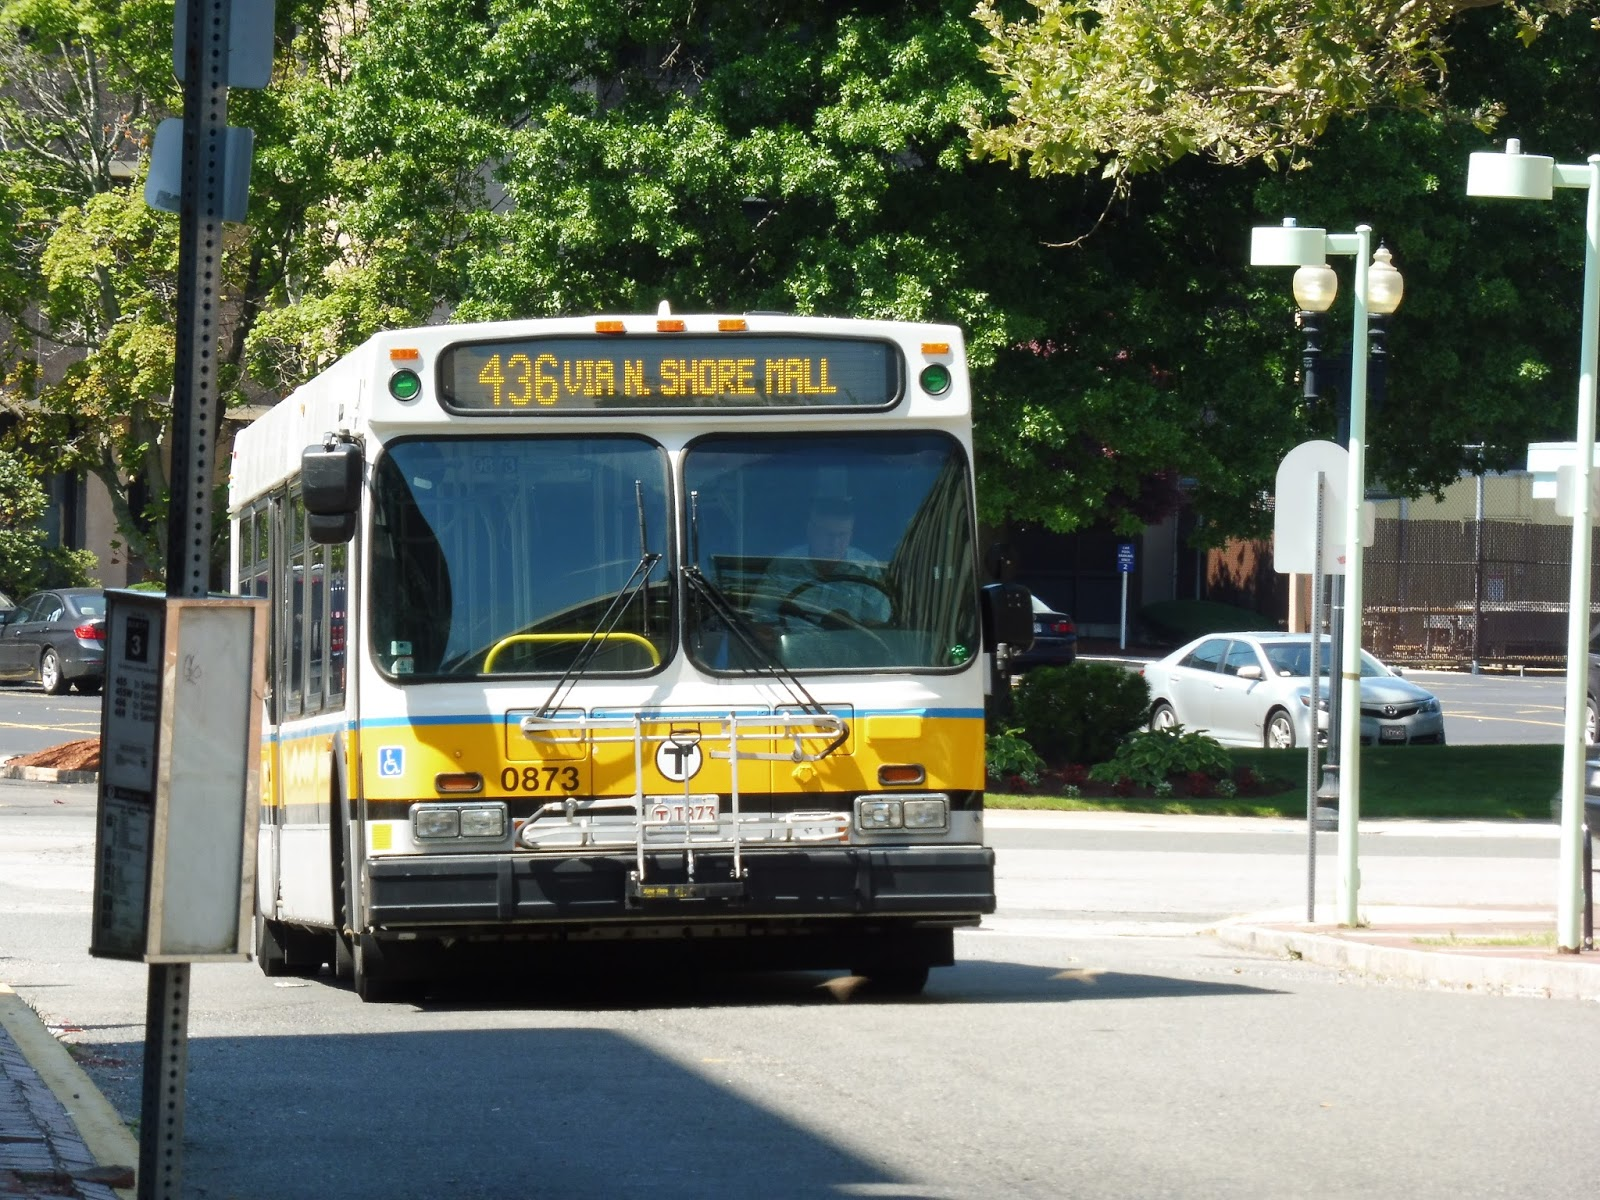 Miles On The Mbta 436 Liberty Tree Mall Central Square